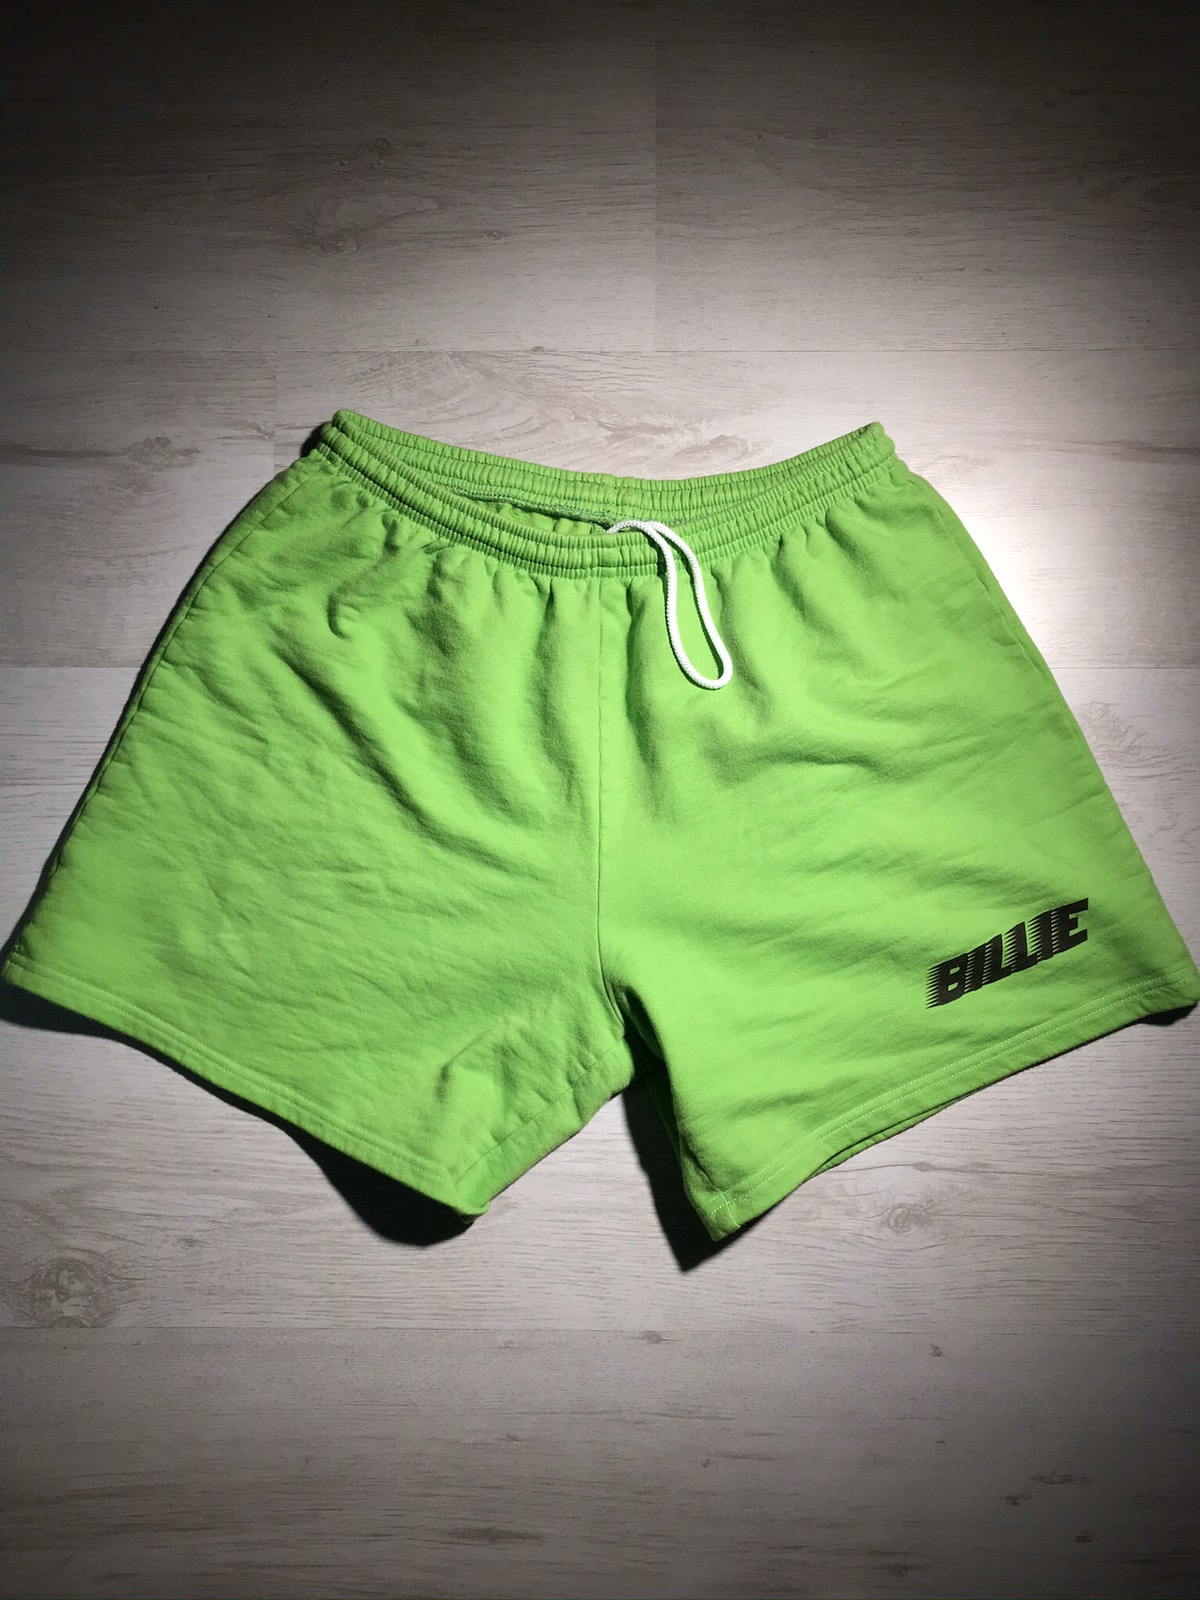 Streetwear Billie Eilish Billie Slime Green Tour Sweatshorts Grailed